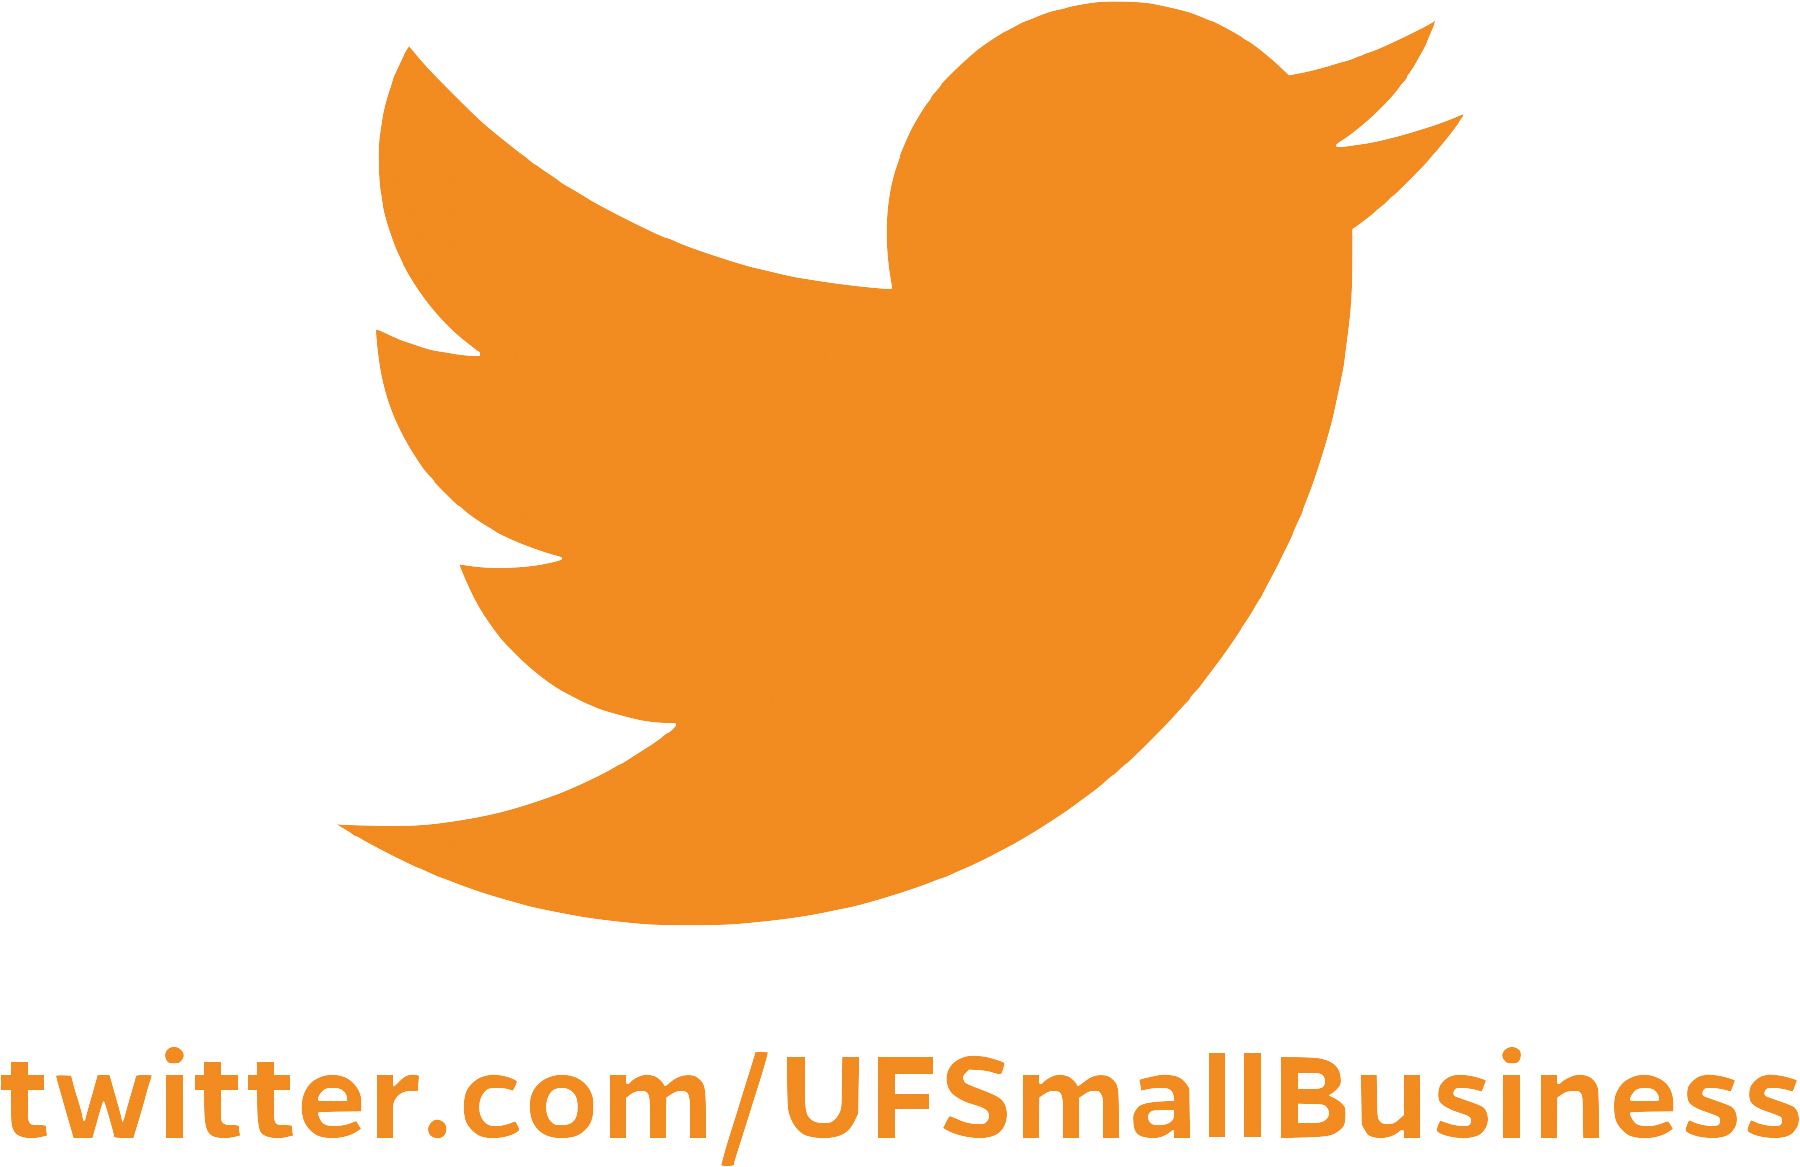 @UFSmallBusiness on Twitter